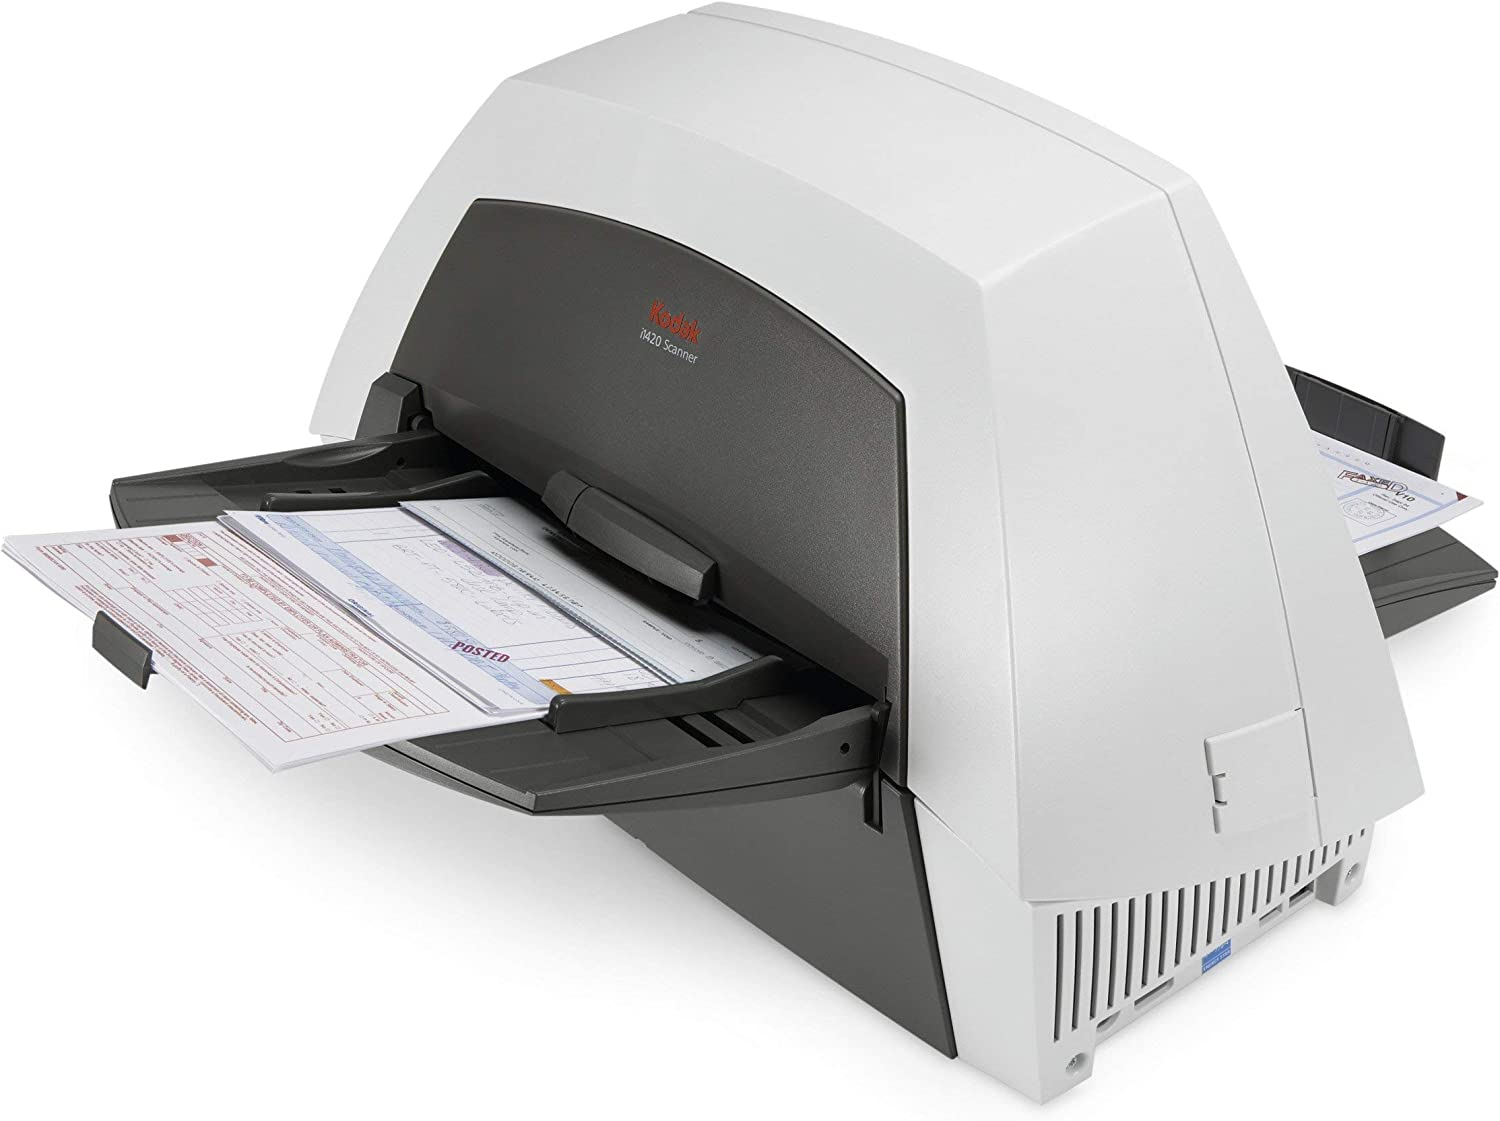 Amazon.com: Kodak I1420 Scanner 60 Pm Duplex Daily Vol 7 500 ...